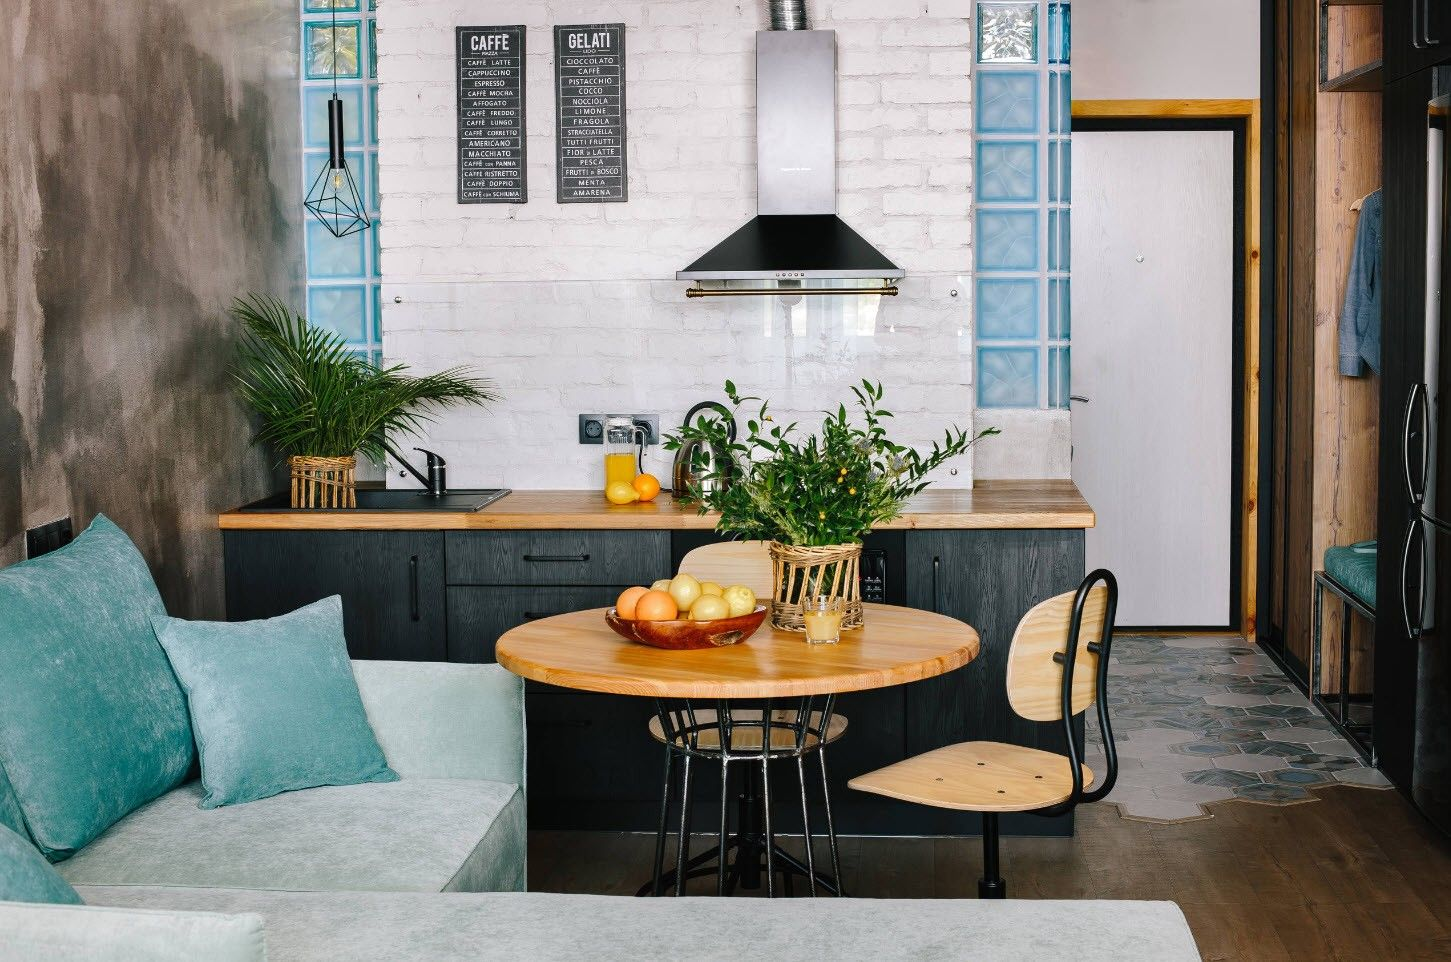 75 Square Feet Kitchen Interior Decoration Advice and Design Ideas. Nice play of color for modern interior with upholstered seating set